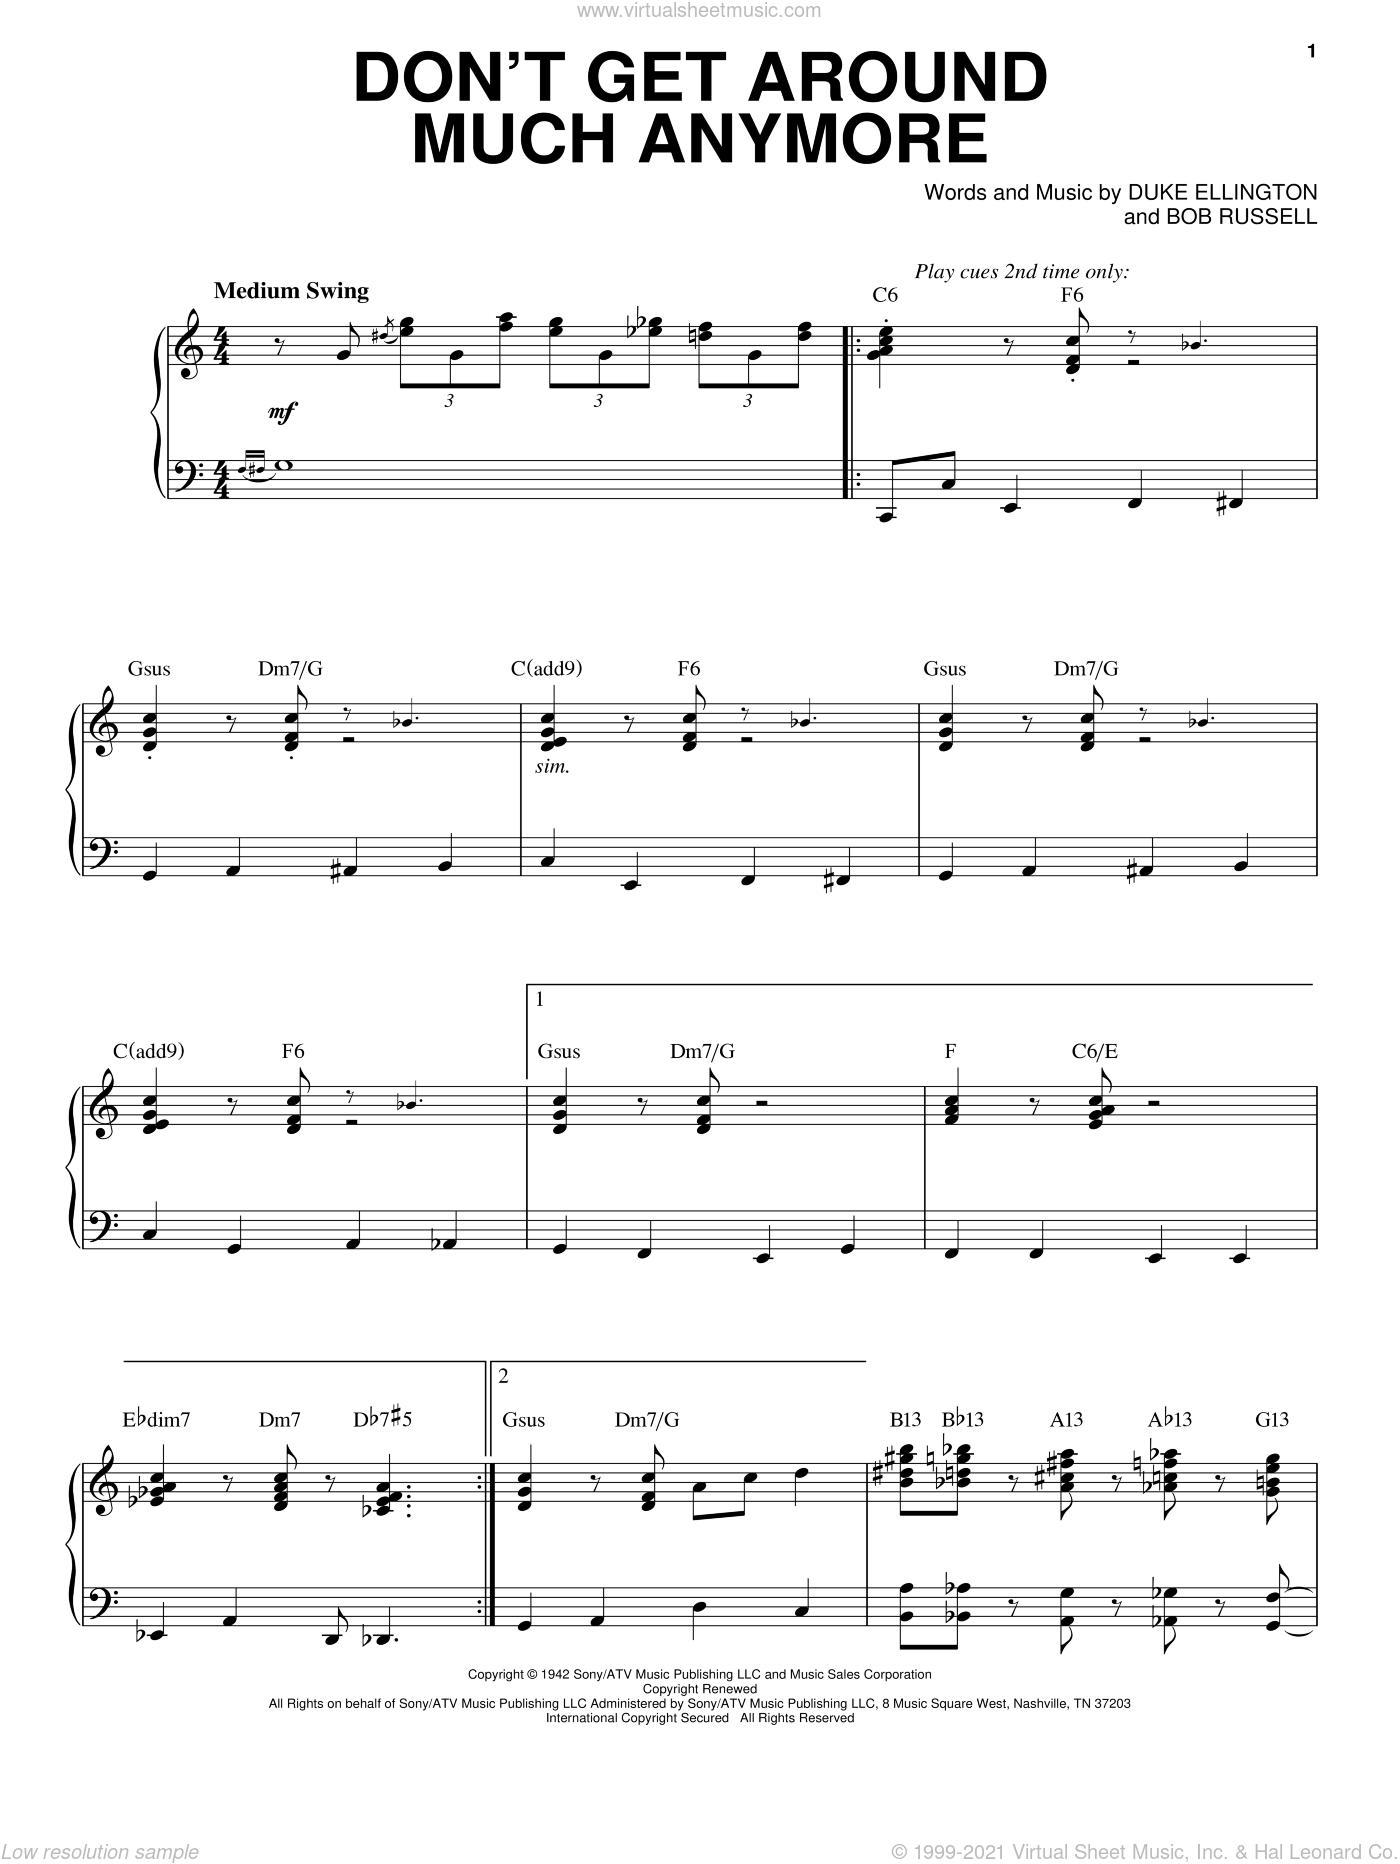 Don't Get Around Much Anymore sheet music for voice and piano by Steve Tyrell, Bob Russell and Duke Ellington, intermediate skill level